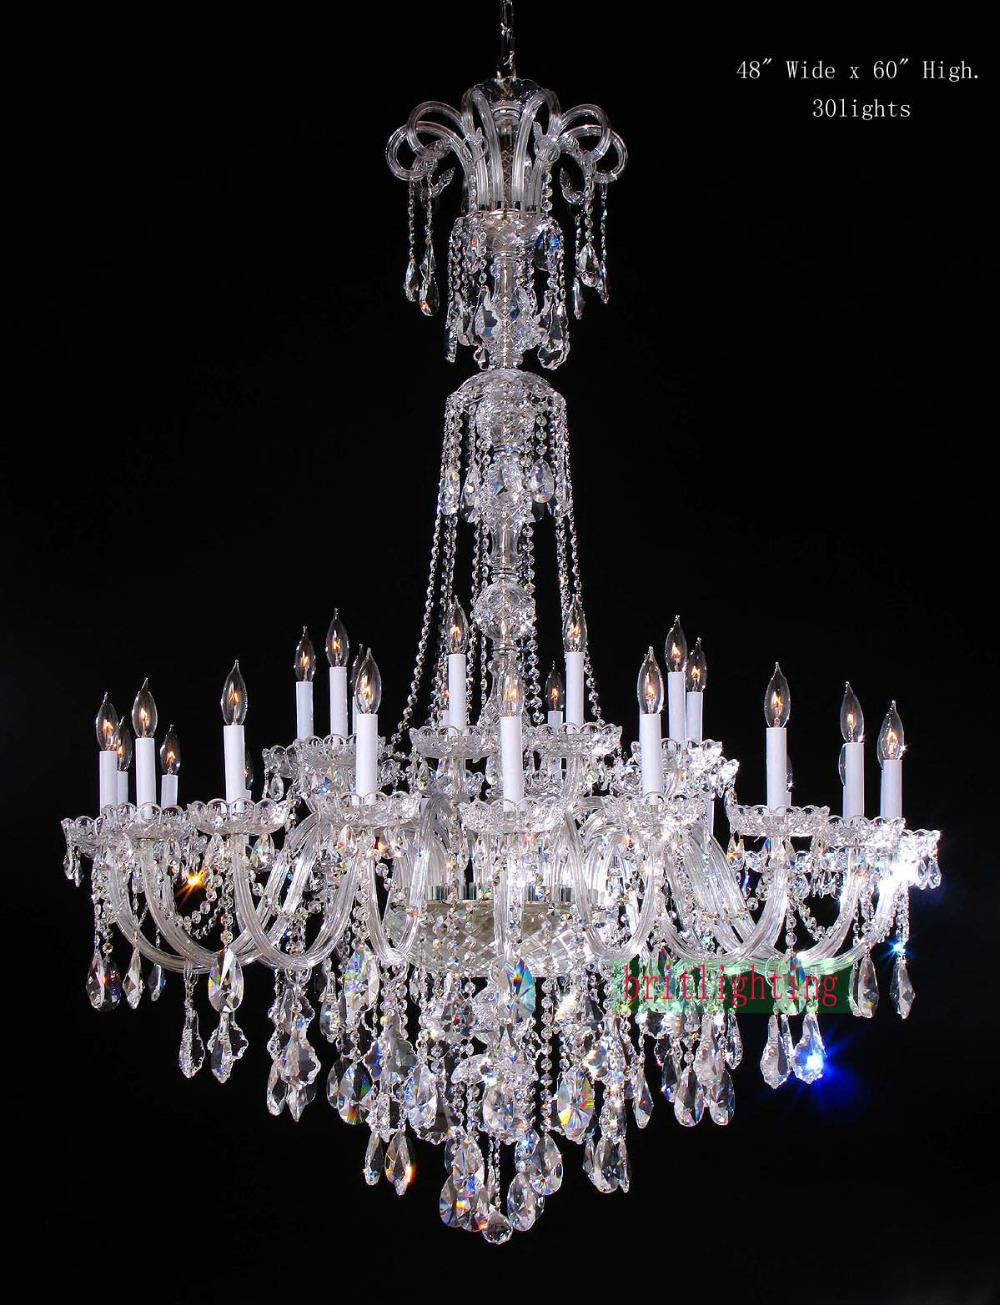 Lamp modern crystal chandeliers 5 star hotel chandelier led crystal lamp modern crystal chandeliers 5 star hotel chandelier led crystal candle chandeliers large elegant crystal chandelier foyer luxury chandeliers crystal aloadofball Gallery